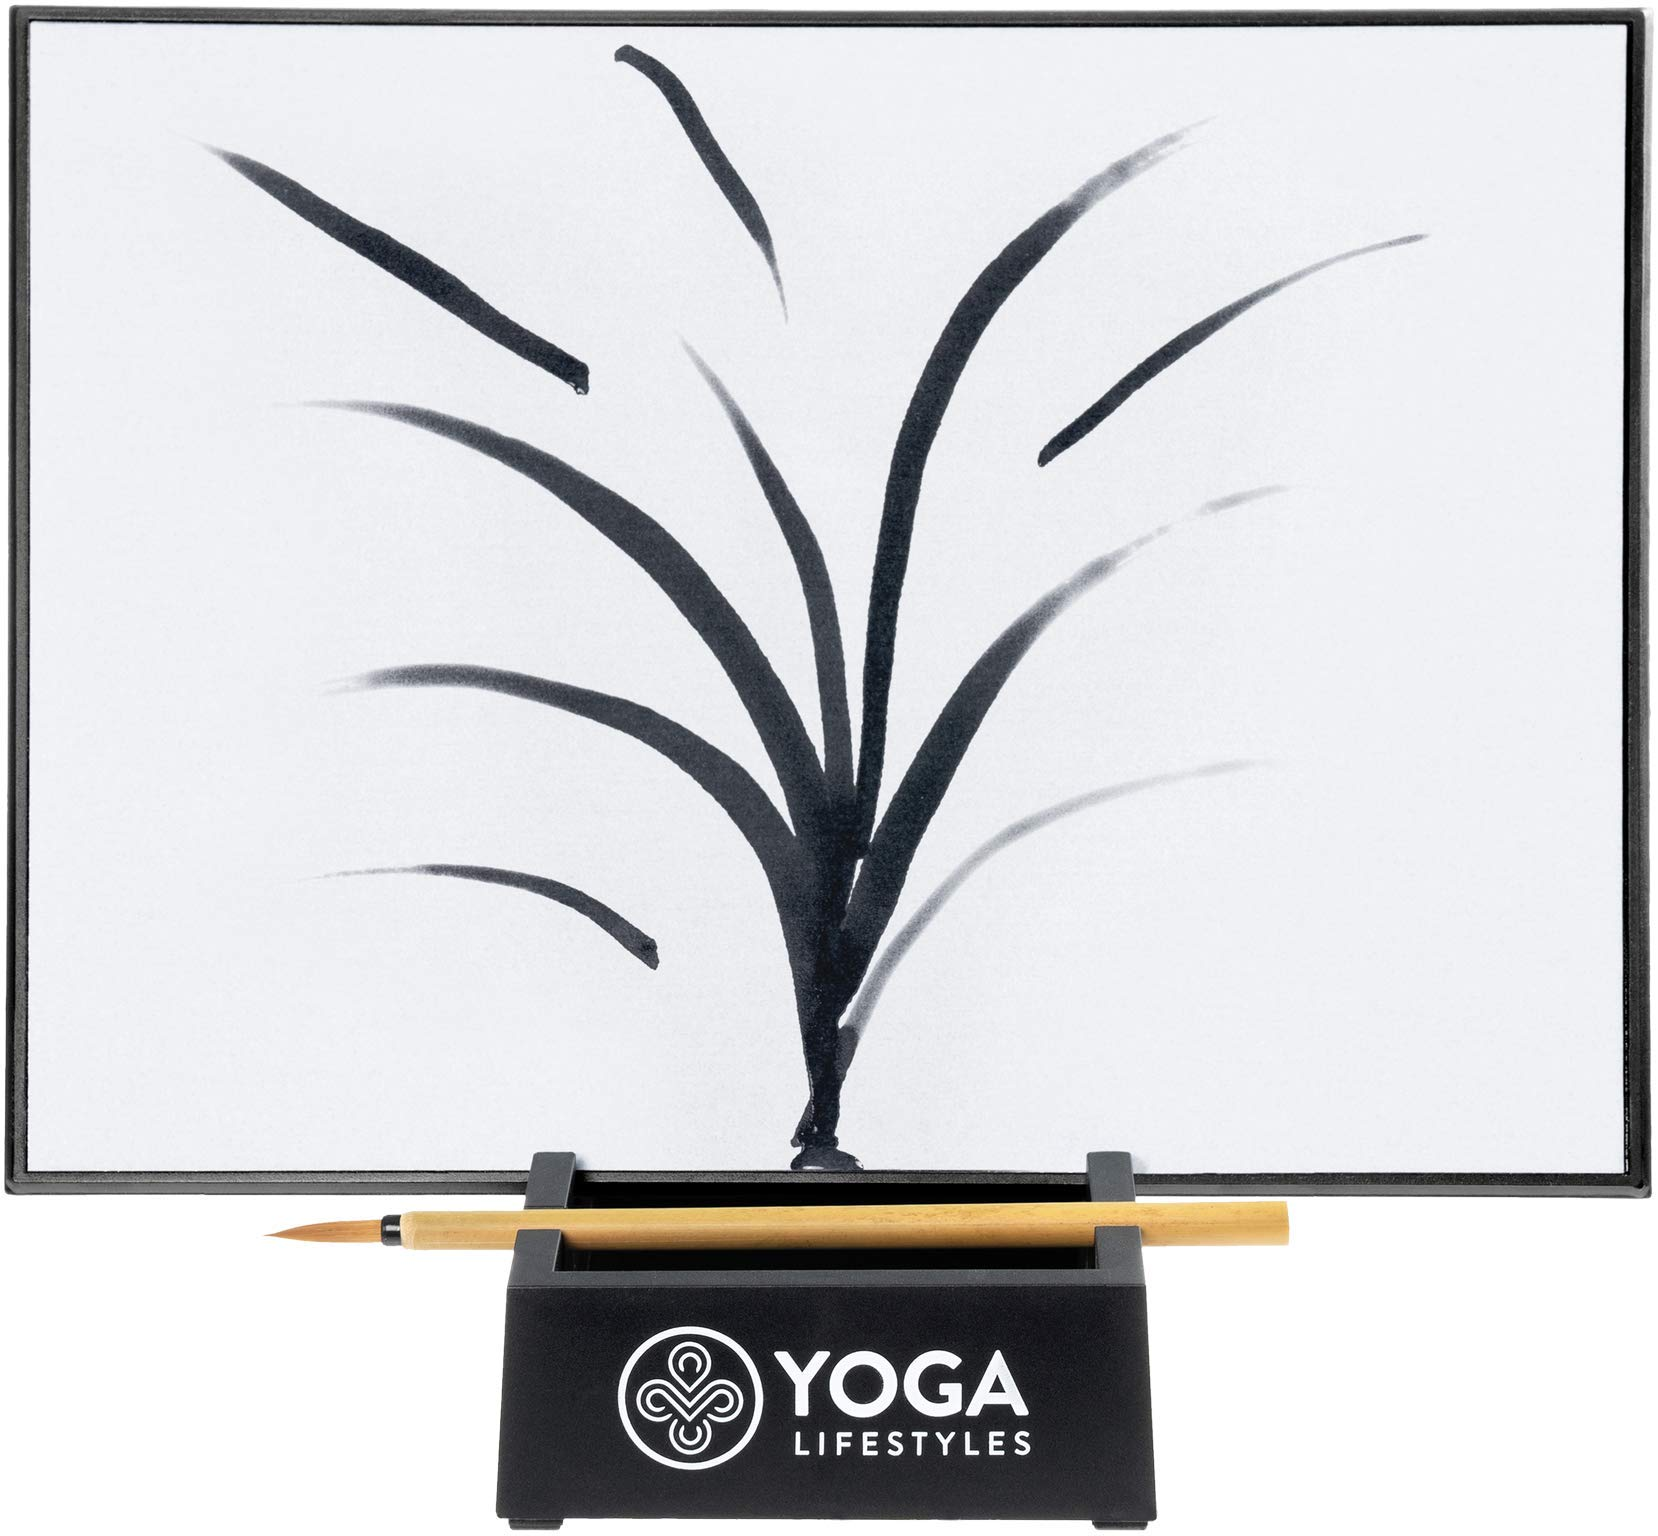 Yoga Lifestyles Zen Buddha Water Canvas Board for Stress Relief - with Stand and Bamboo Brush - Inkless, Disappearing Art - Art Board for Meditation, Relaxation by Yoga Lifestyles